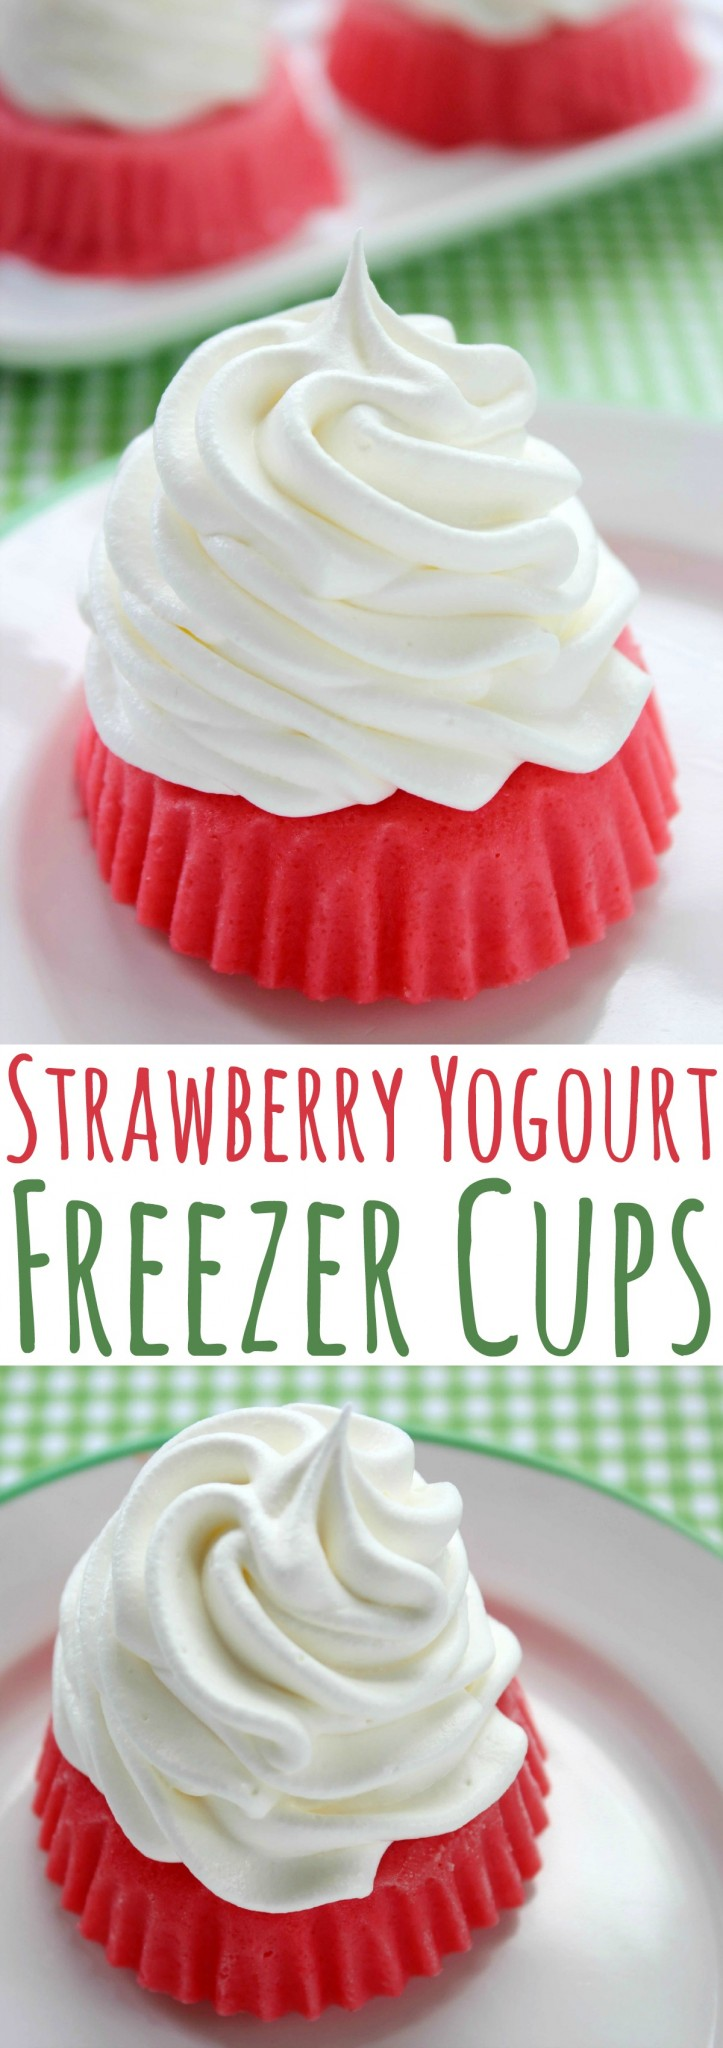 Cool down with this fun Strawberry Yogourt Freezer Cups recipe the whole family will enjoy!